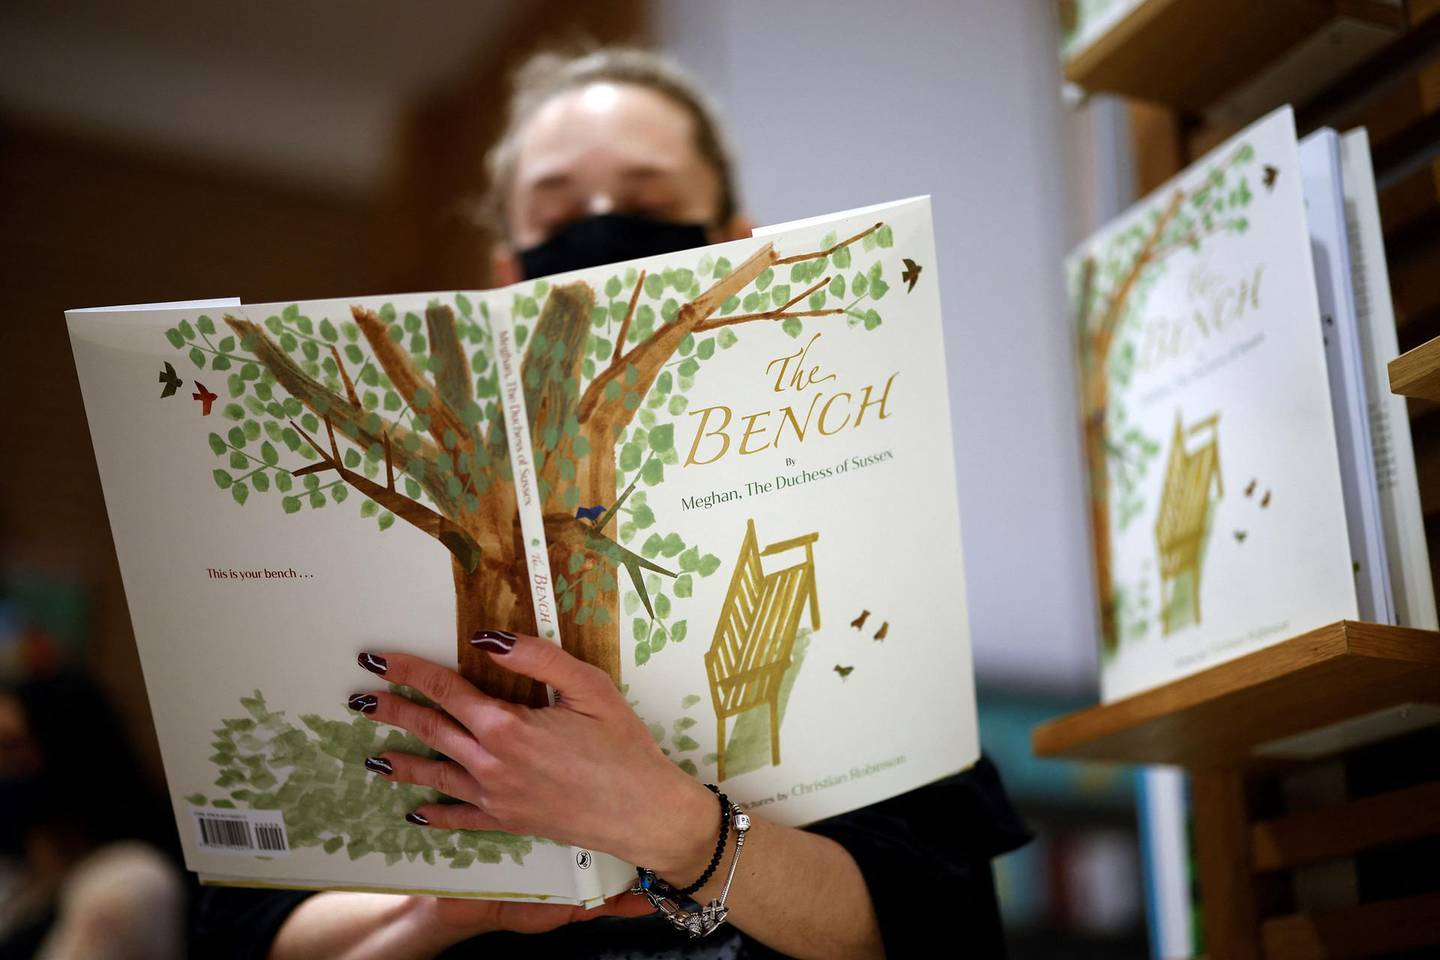 An employee poses with the children's book 'The Bench' by Meghan, Duchess of Sussex, which is inspired by her husband Harry and her son Archie, displayed in a bookshop in London on June 8, 2021, following its release.  / AFP / Tolga Akmen